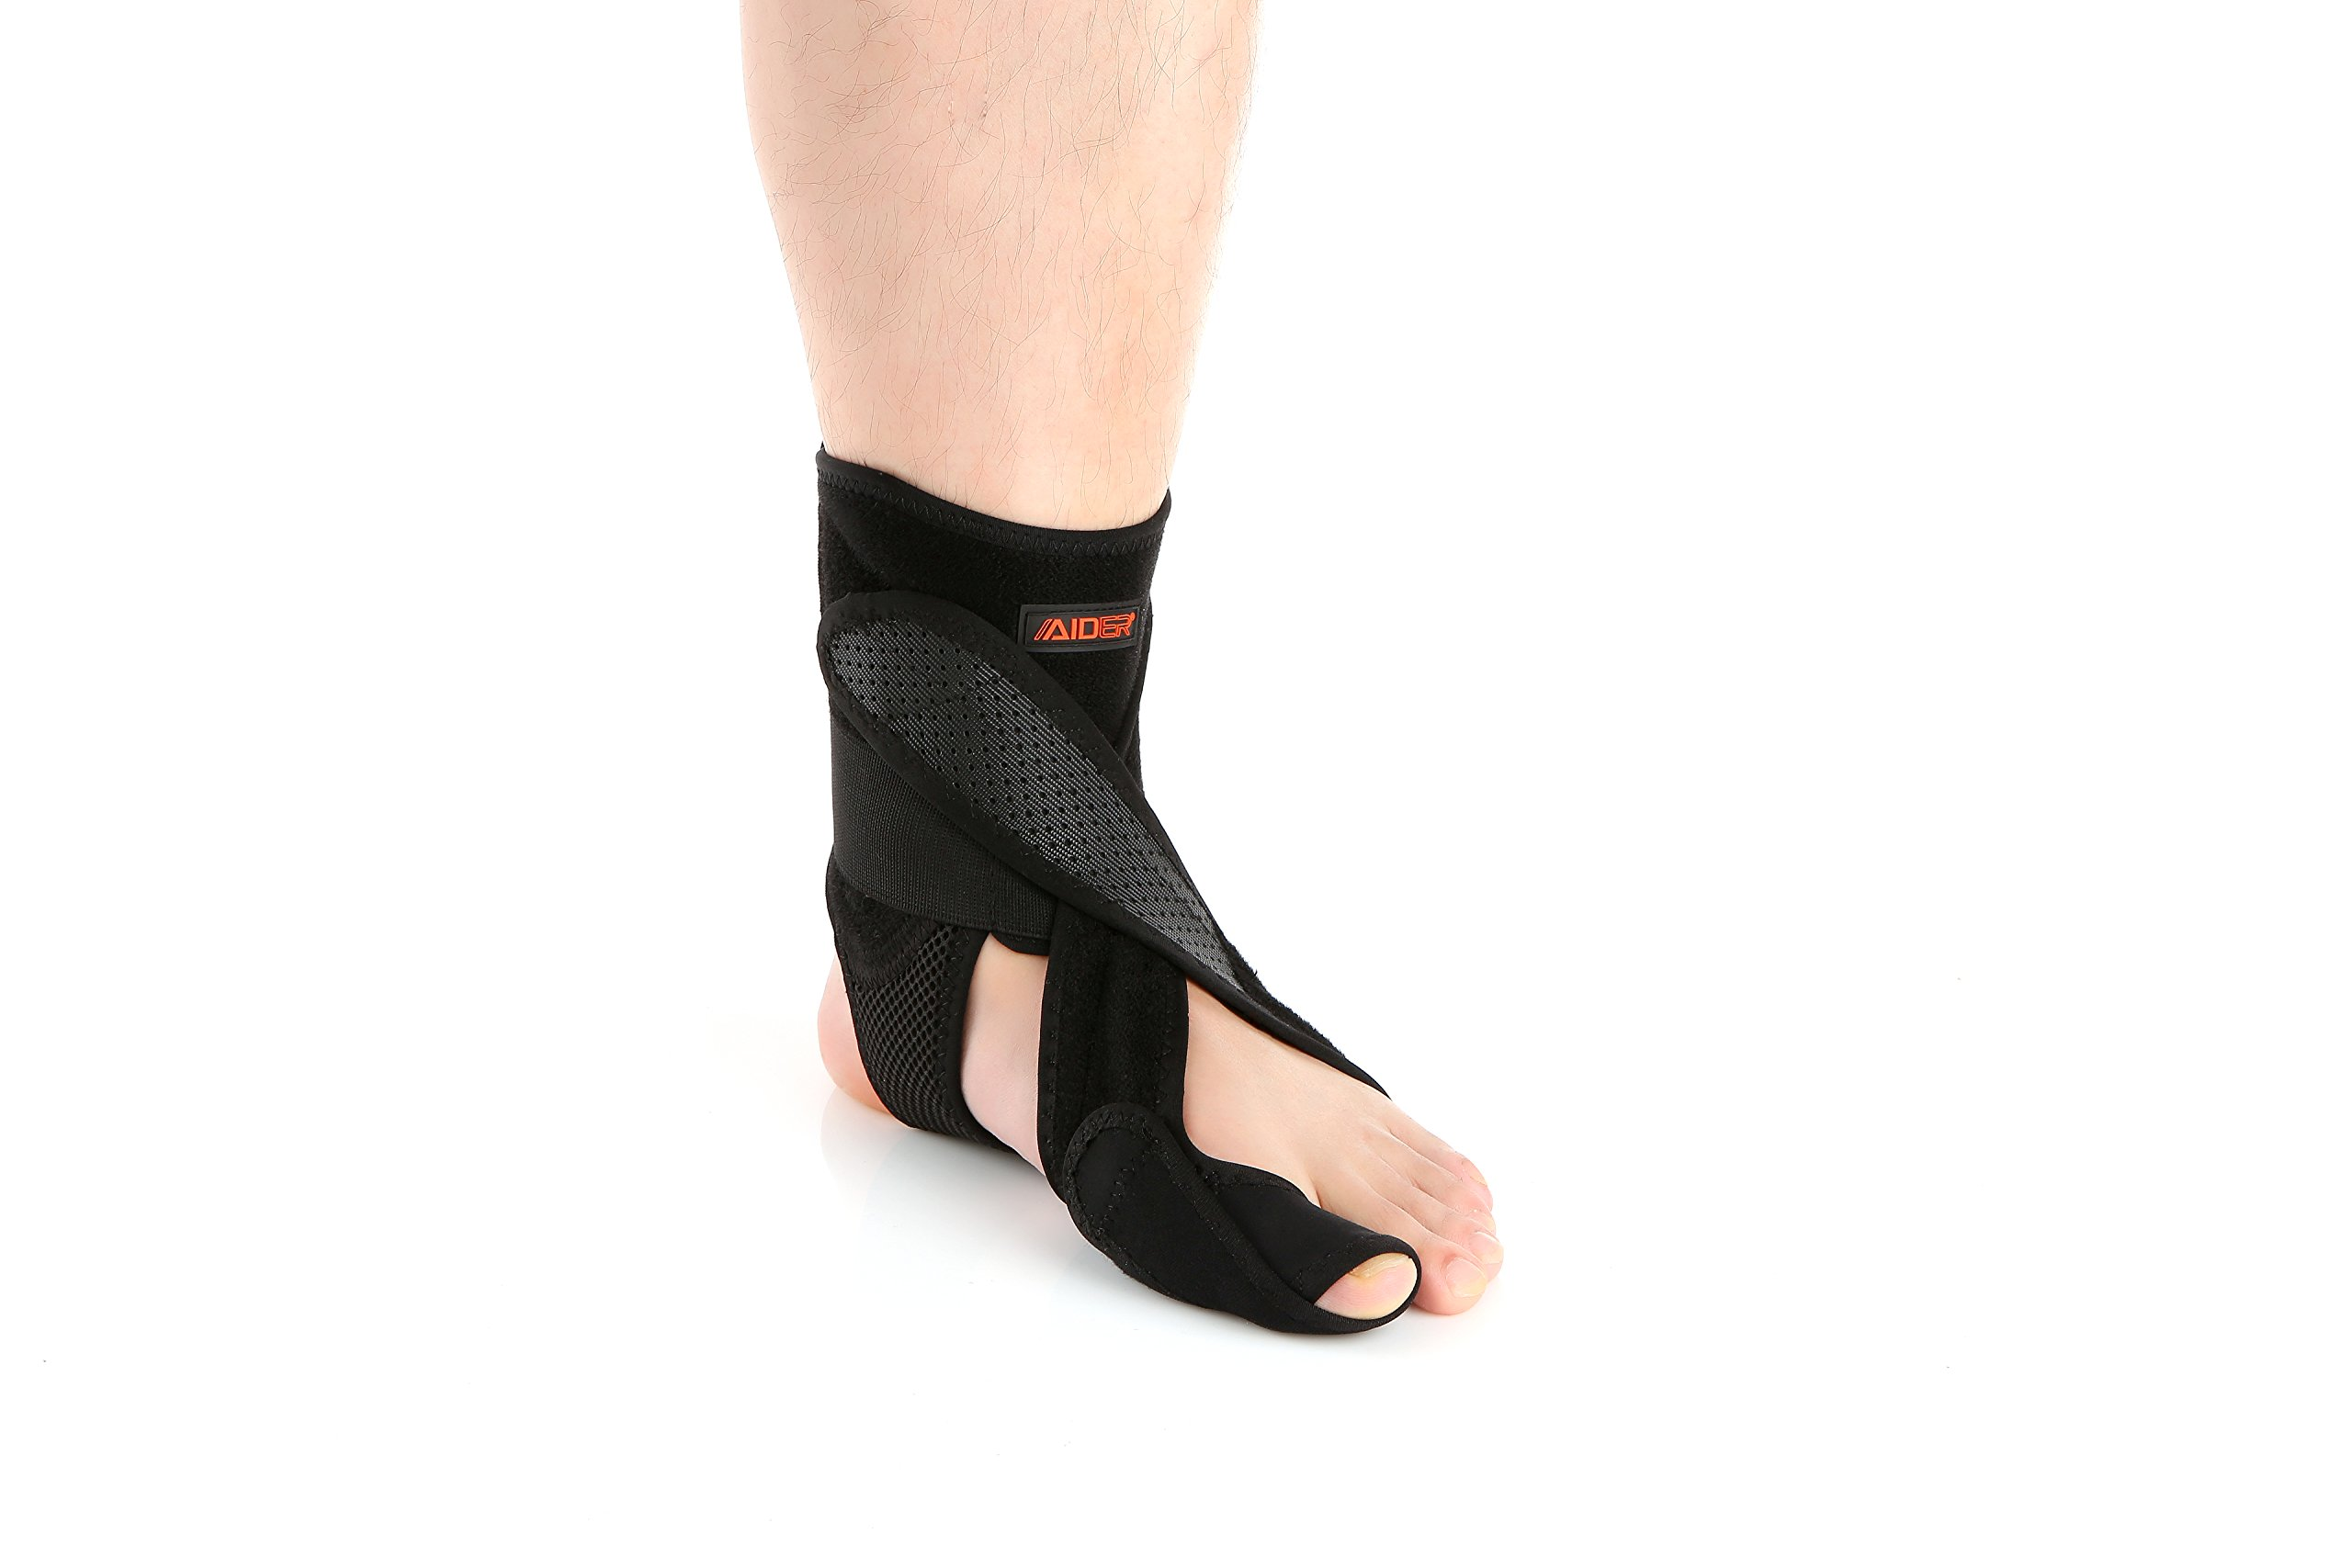 Aider Dropfoot Brace Type 1 for Stroke, Hemiplegia, Peroneal Nerve Injury, Spinal Cord Injury (Left Type1, Size up to US10) by Aider